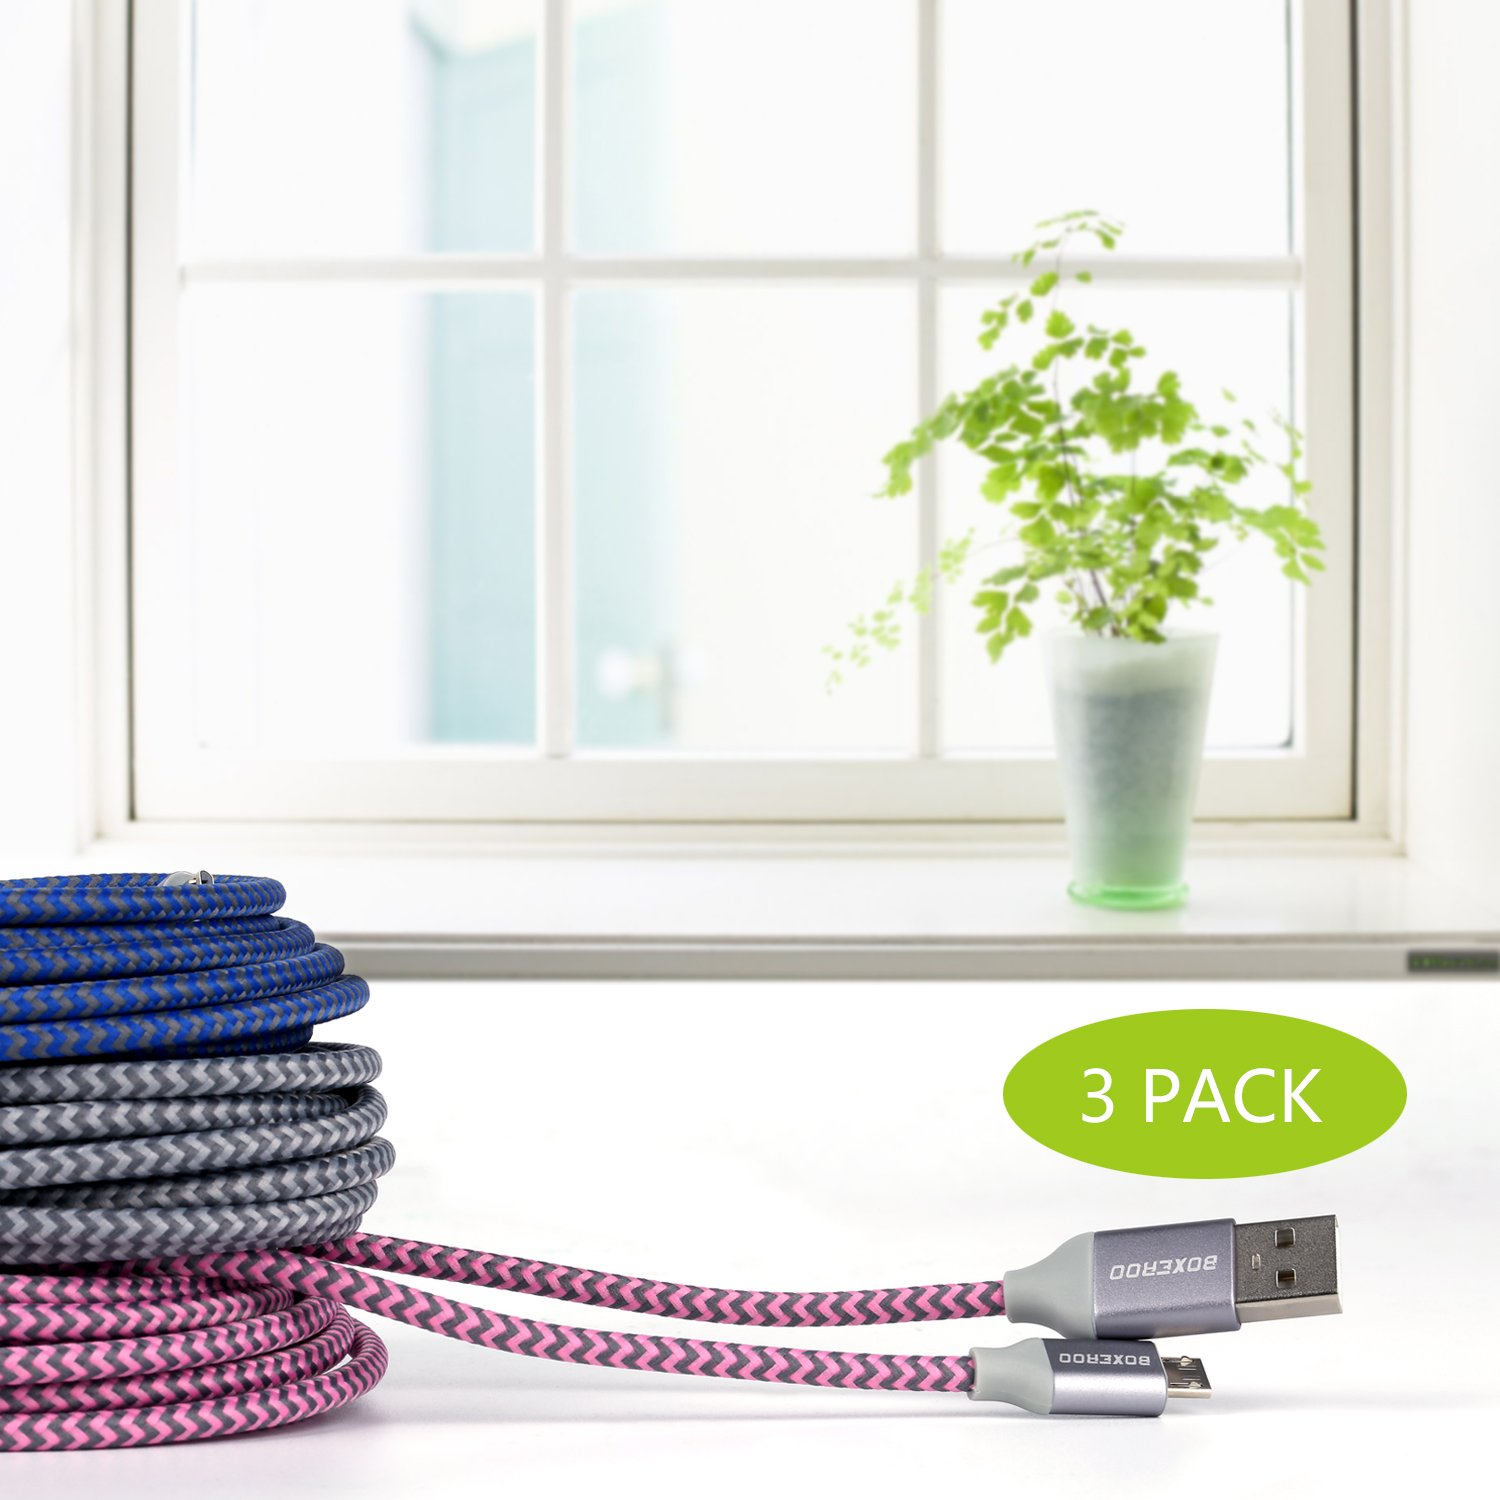 Boxeroo Micro USB Cable,3 Pack 10FT Long Nylon Braided High Speed 2.0 USB to Micro USB Charging Cables Android Fast Charger Cord Work for Samsung and More by Boxeroo (Image #6)